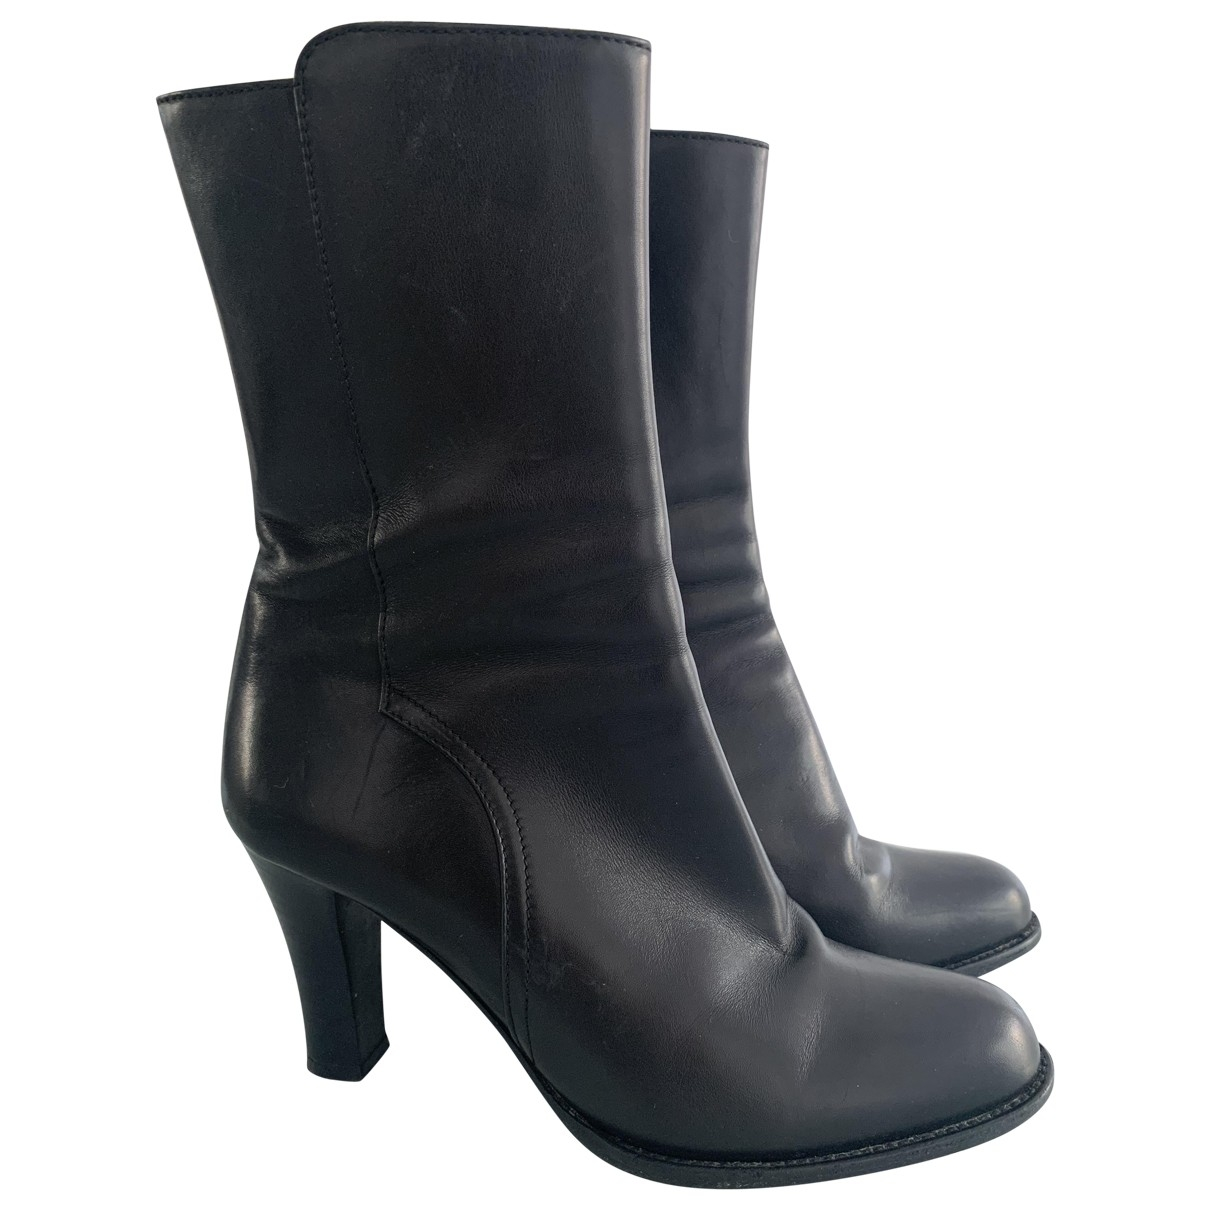 Bally \N Black Leather Boots for Women 36.5 EU